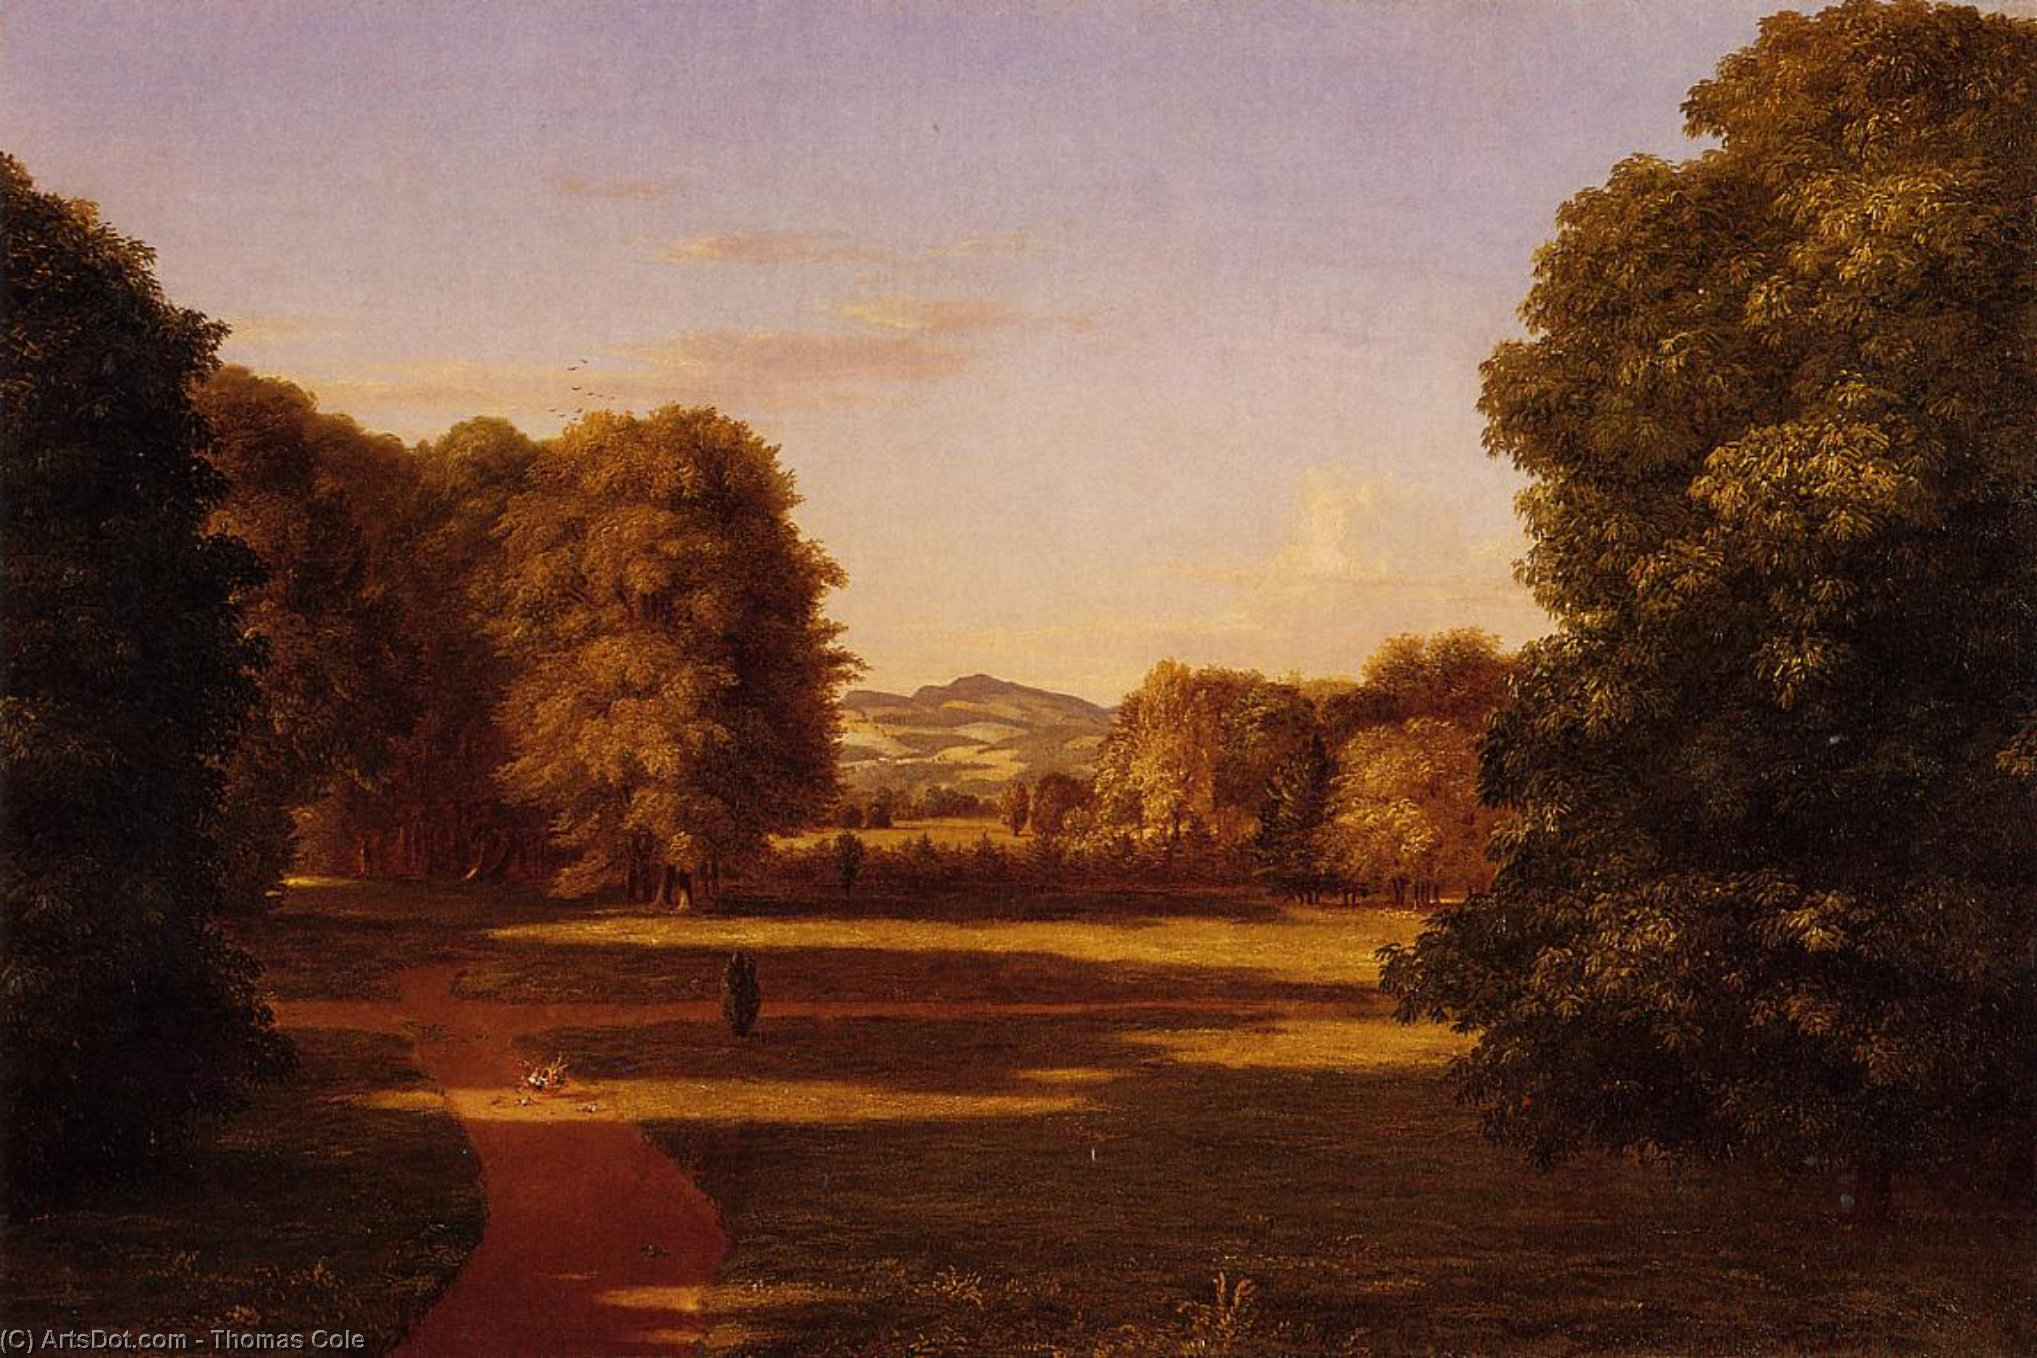 Os Jardins da Van Rensselaer Manor House, óleo sobre tela por Thomas Cole (1801-1848, United Kingdom)